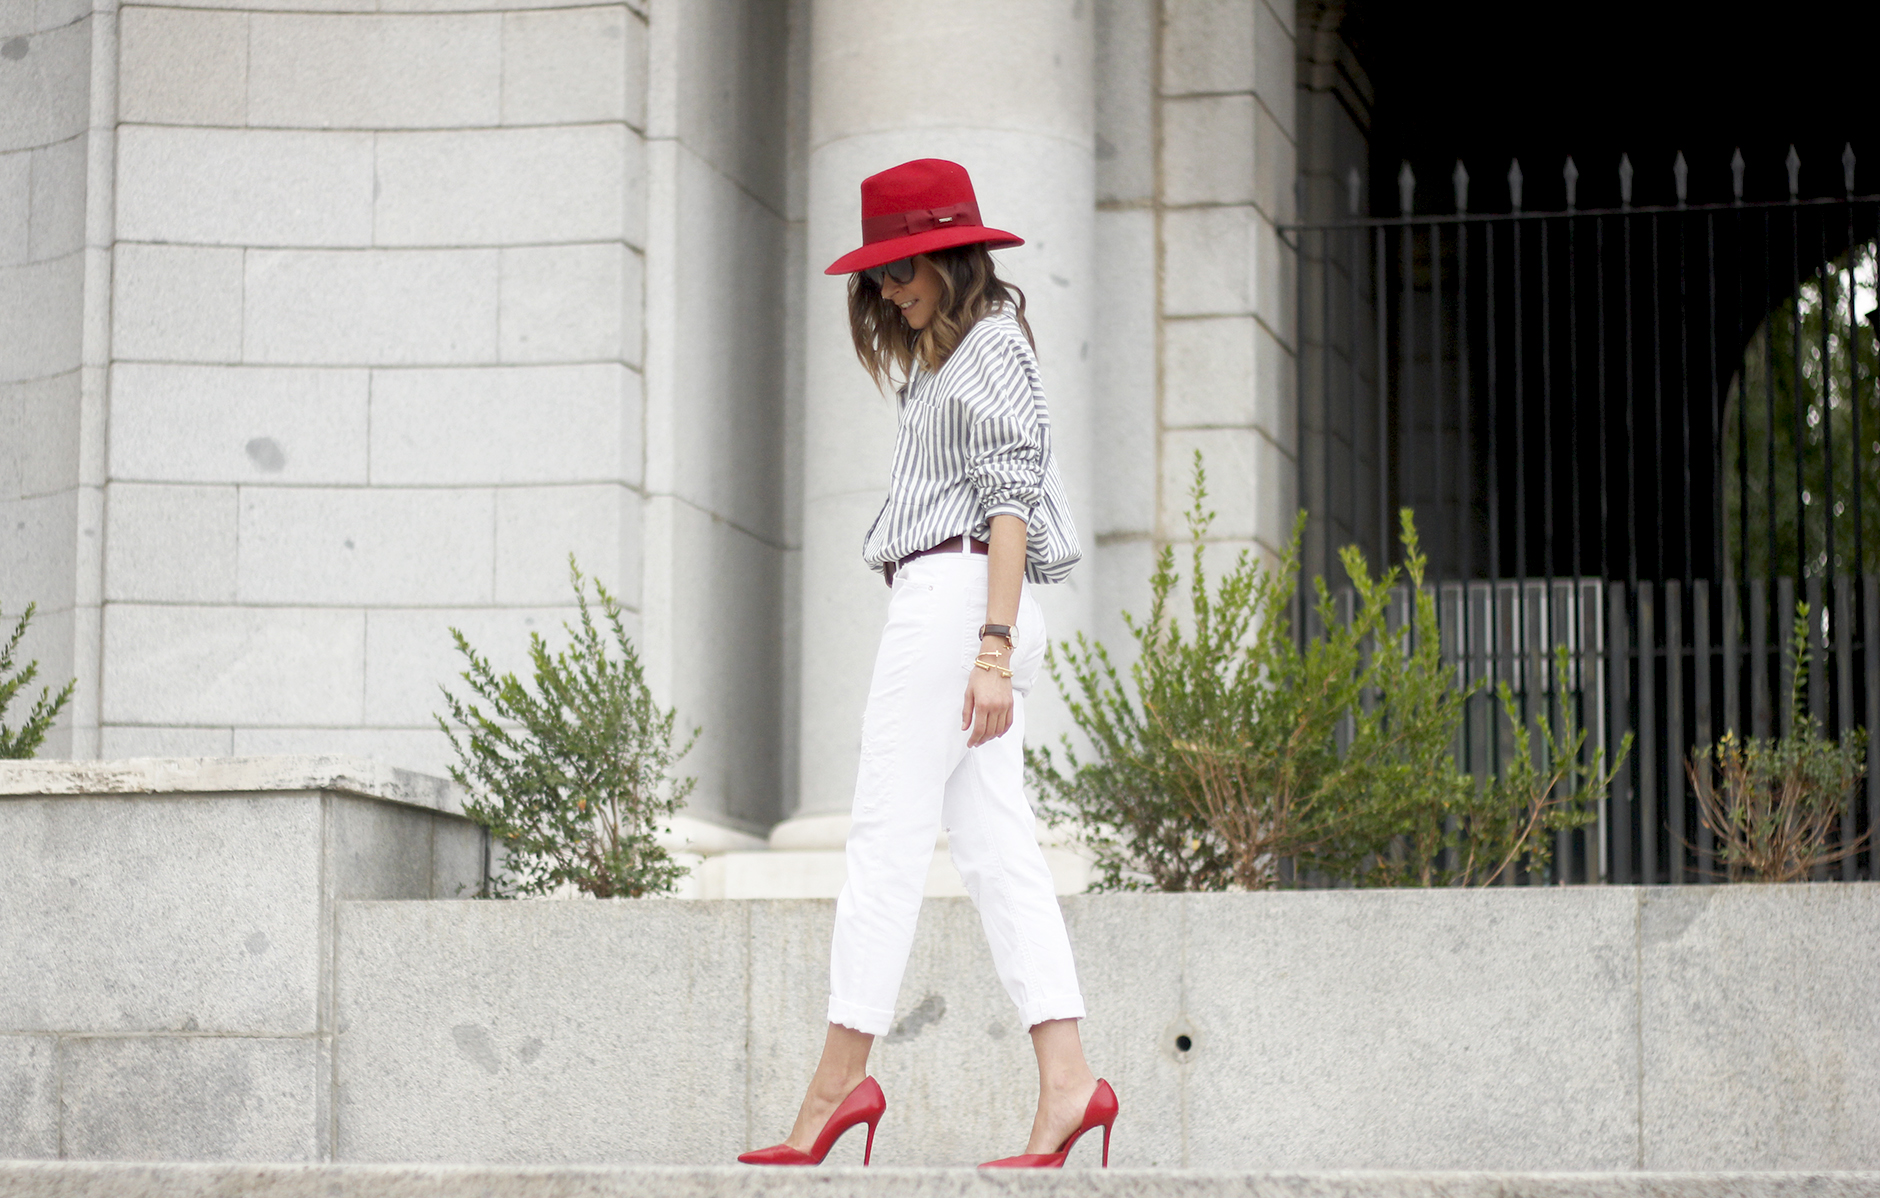 Red Hat Red Shoes White Jeans16